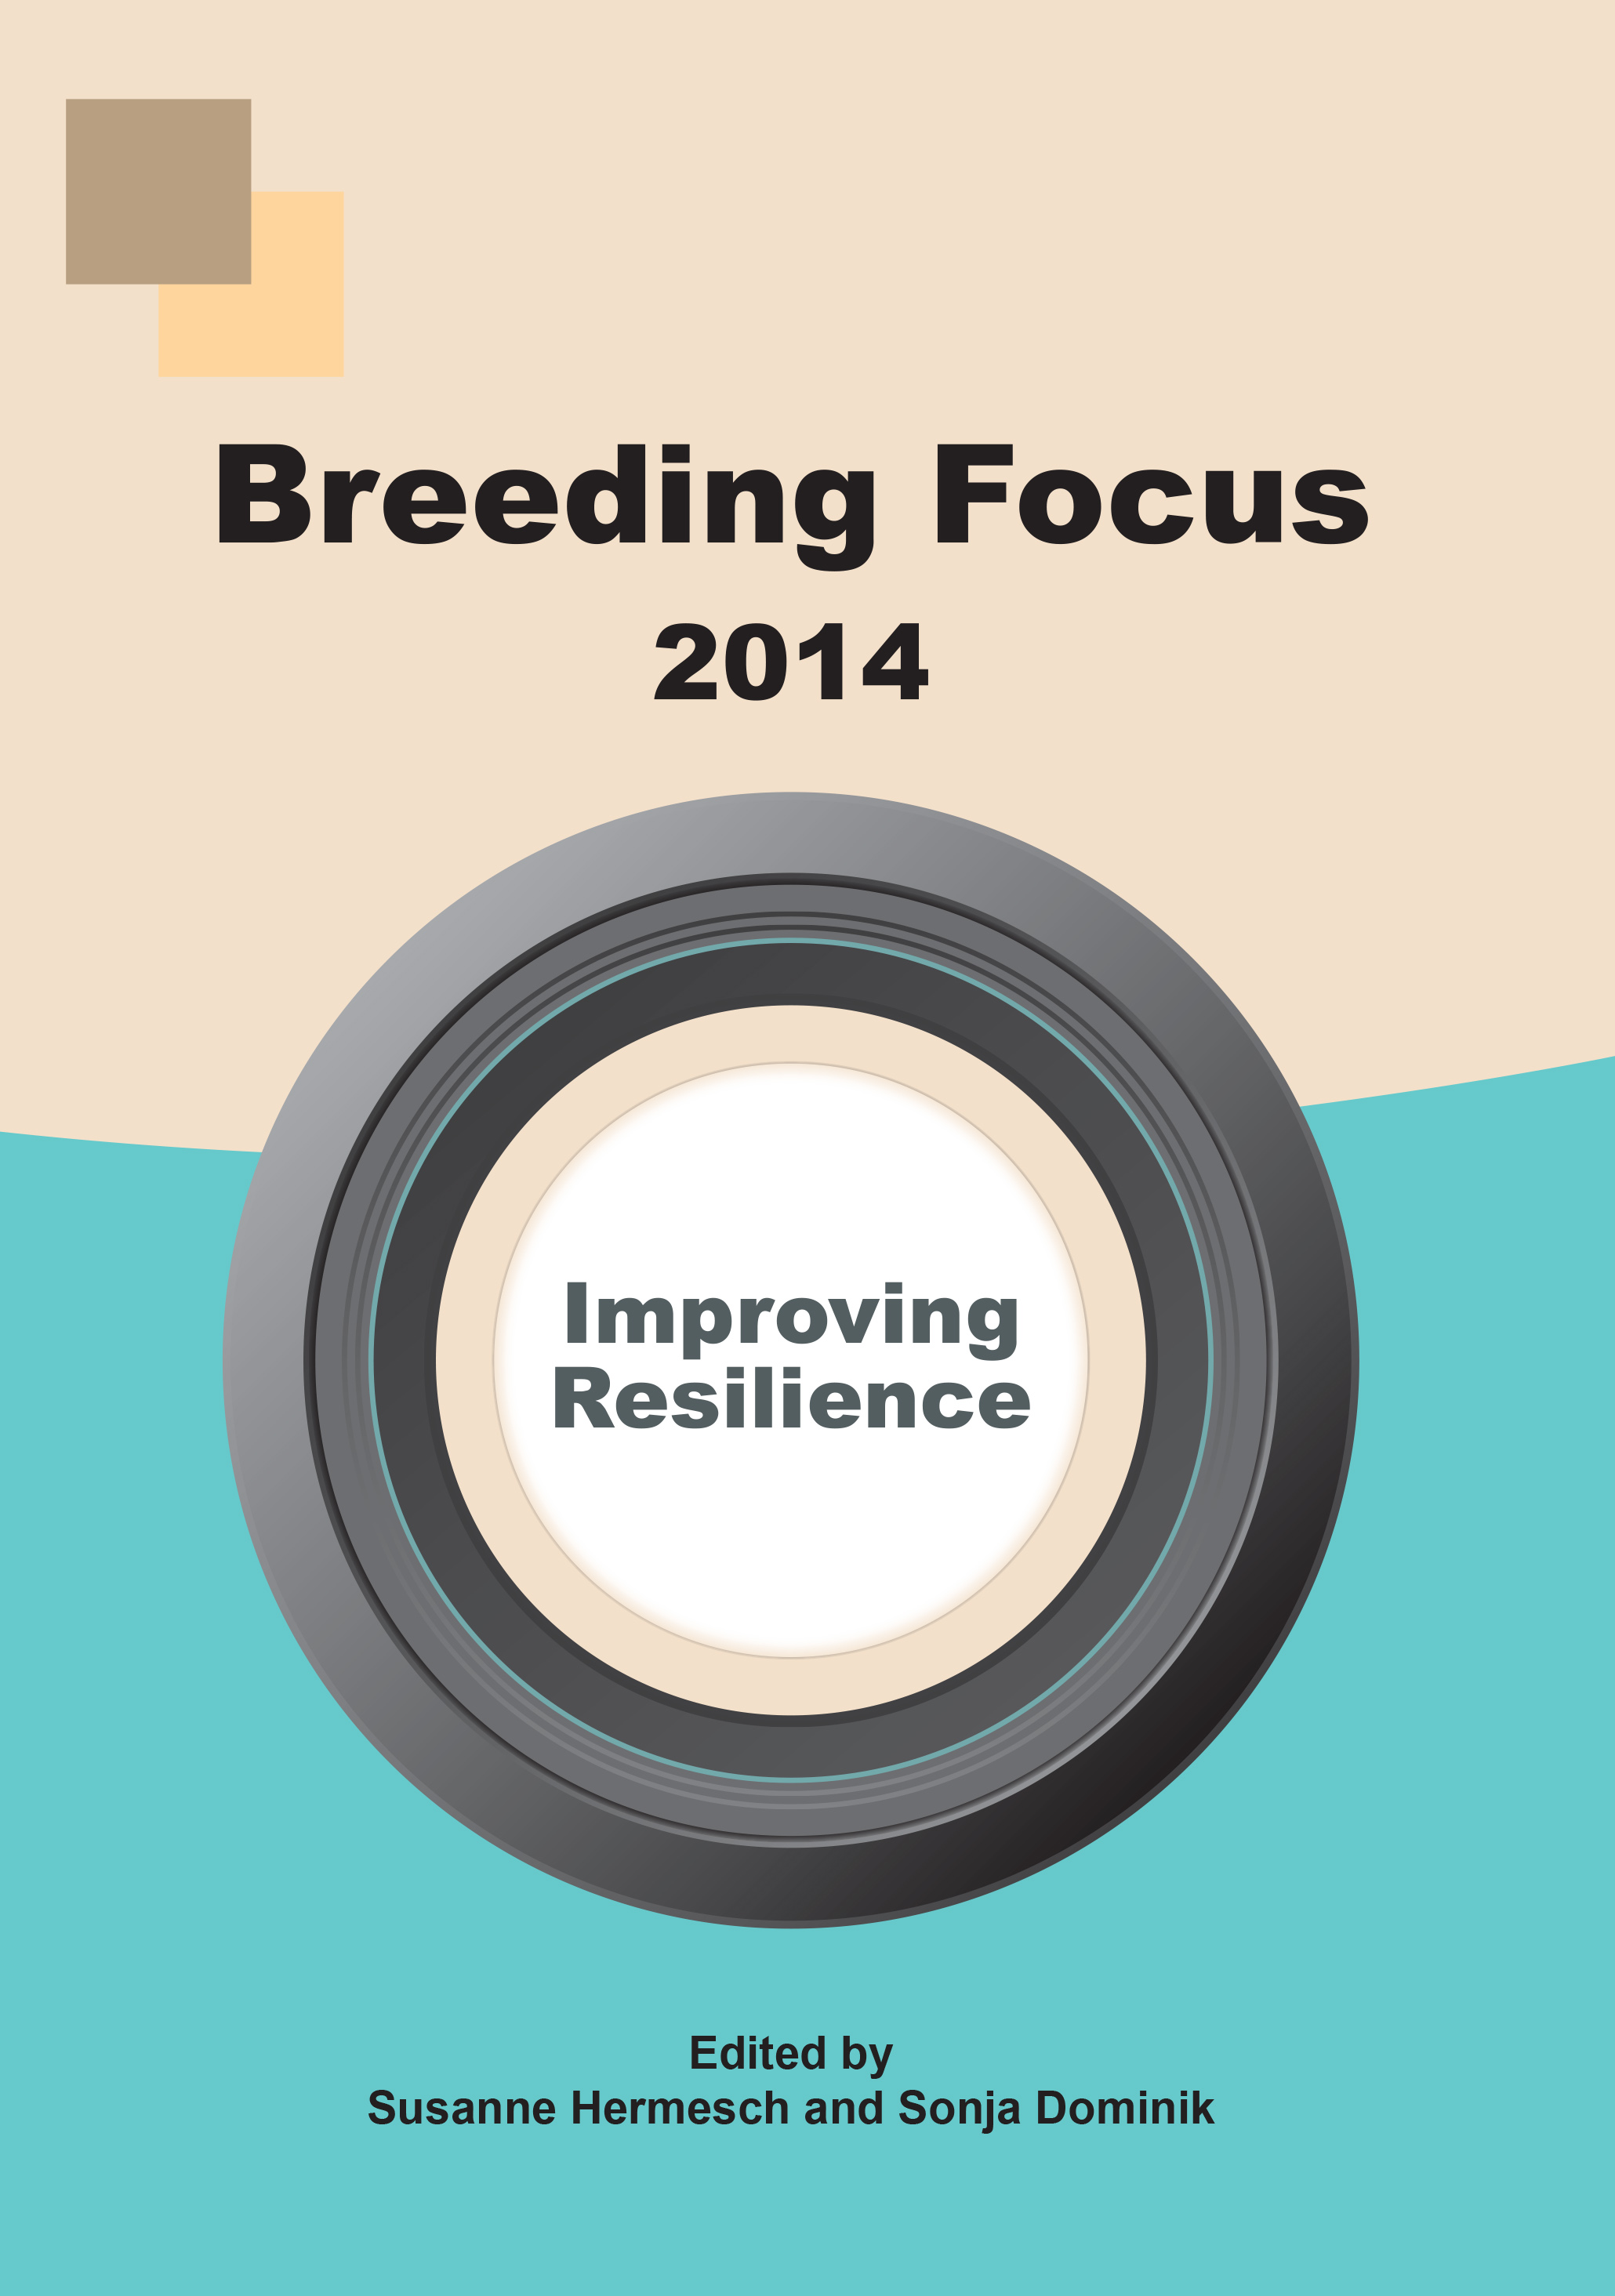 Breeding Focus 2014